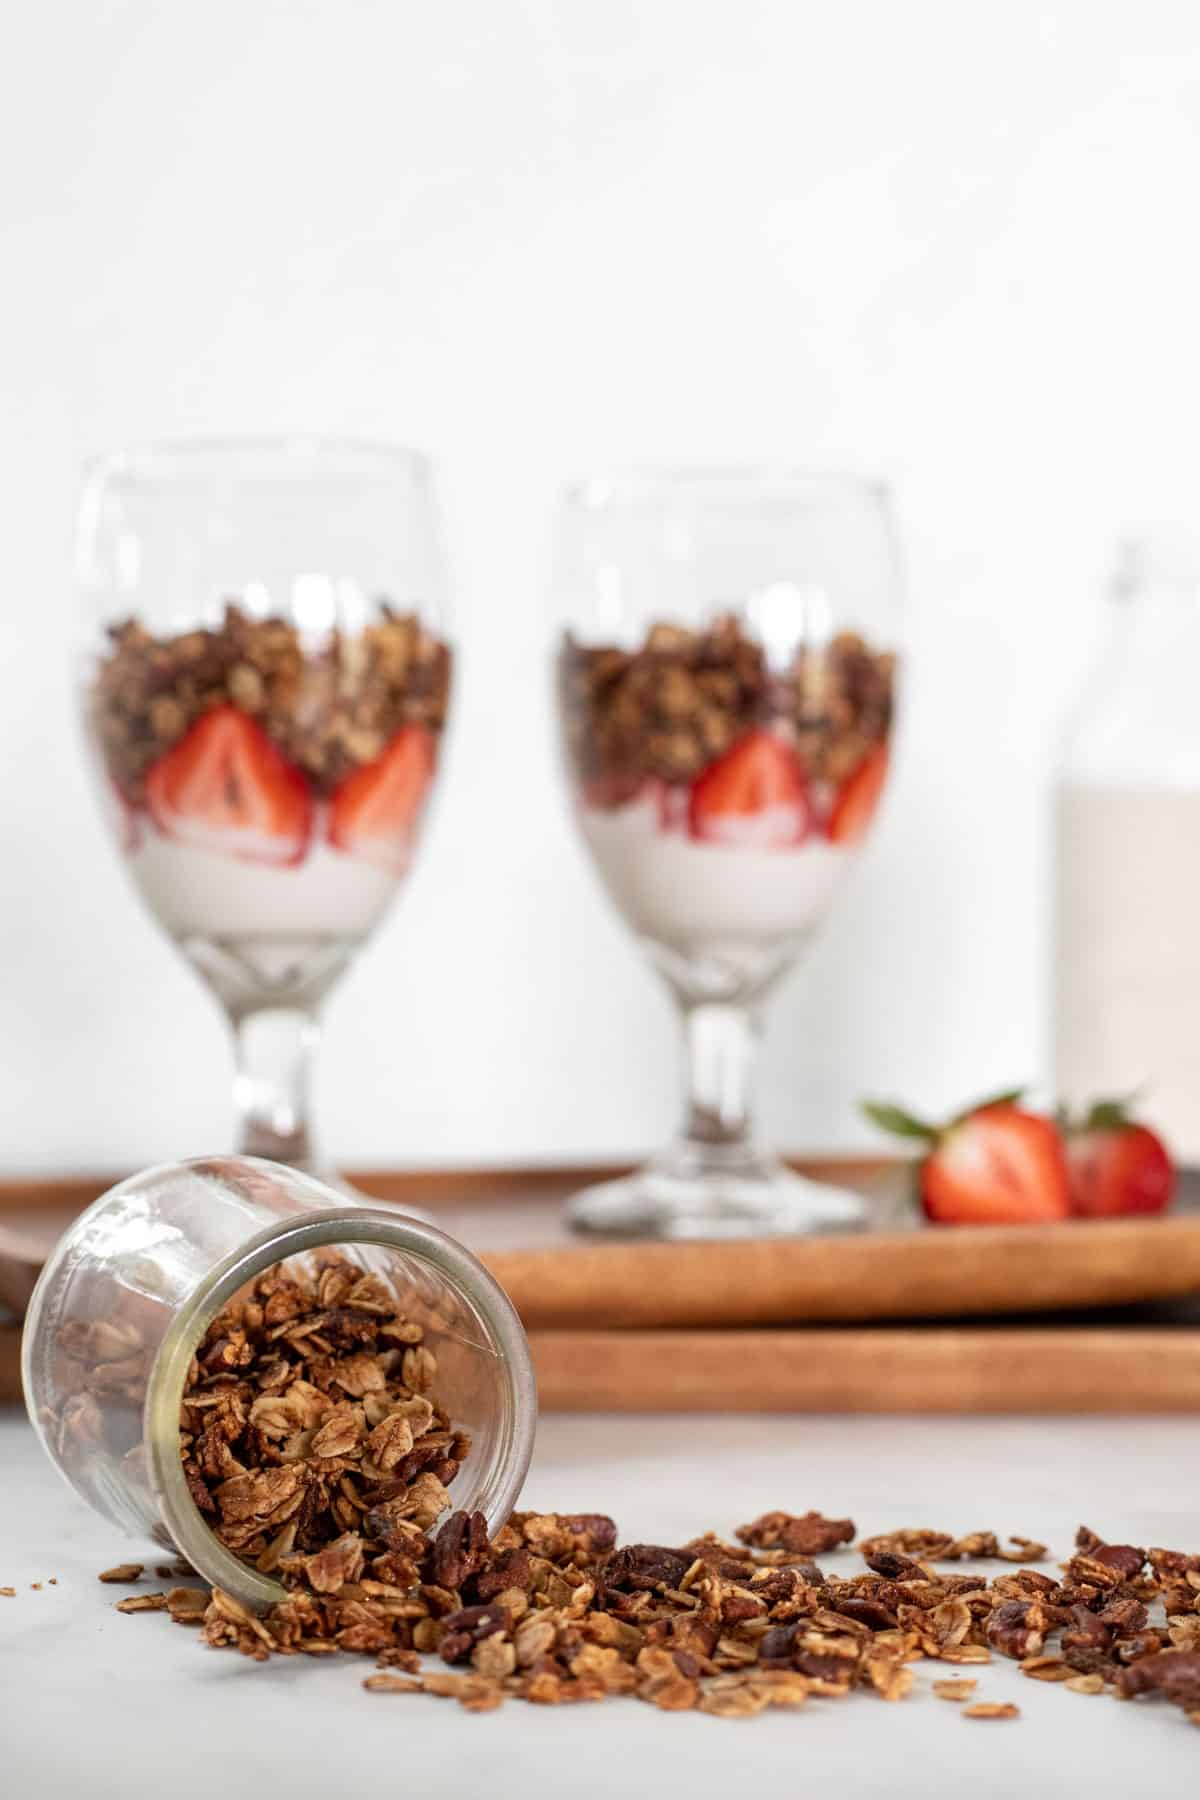 Granola in parfait glasses with yogurt and strawberries with a jar of granola spilled out in front of them.